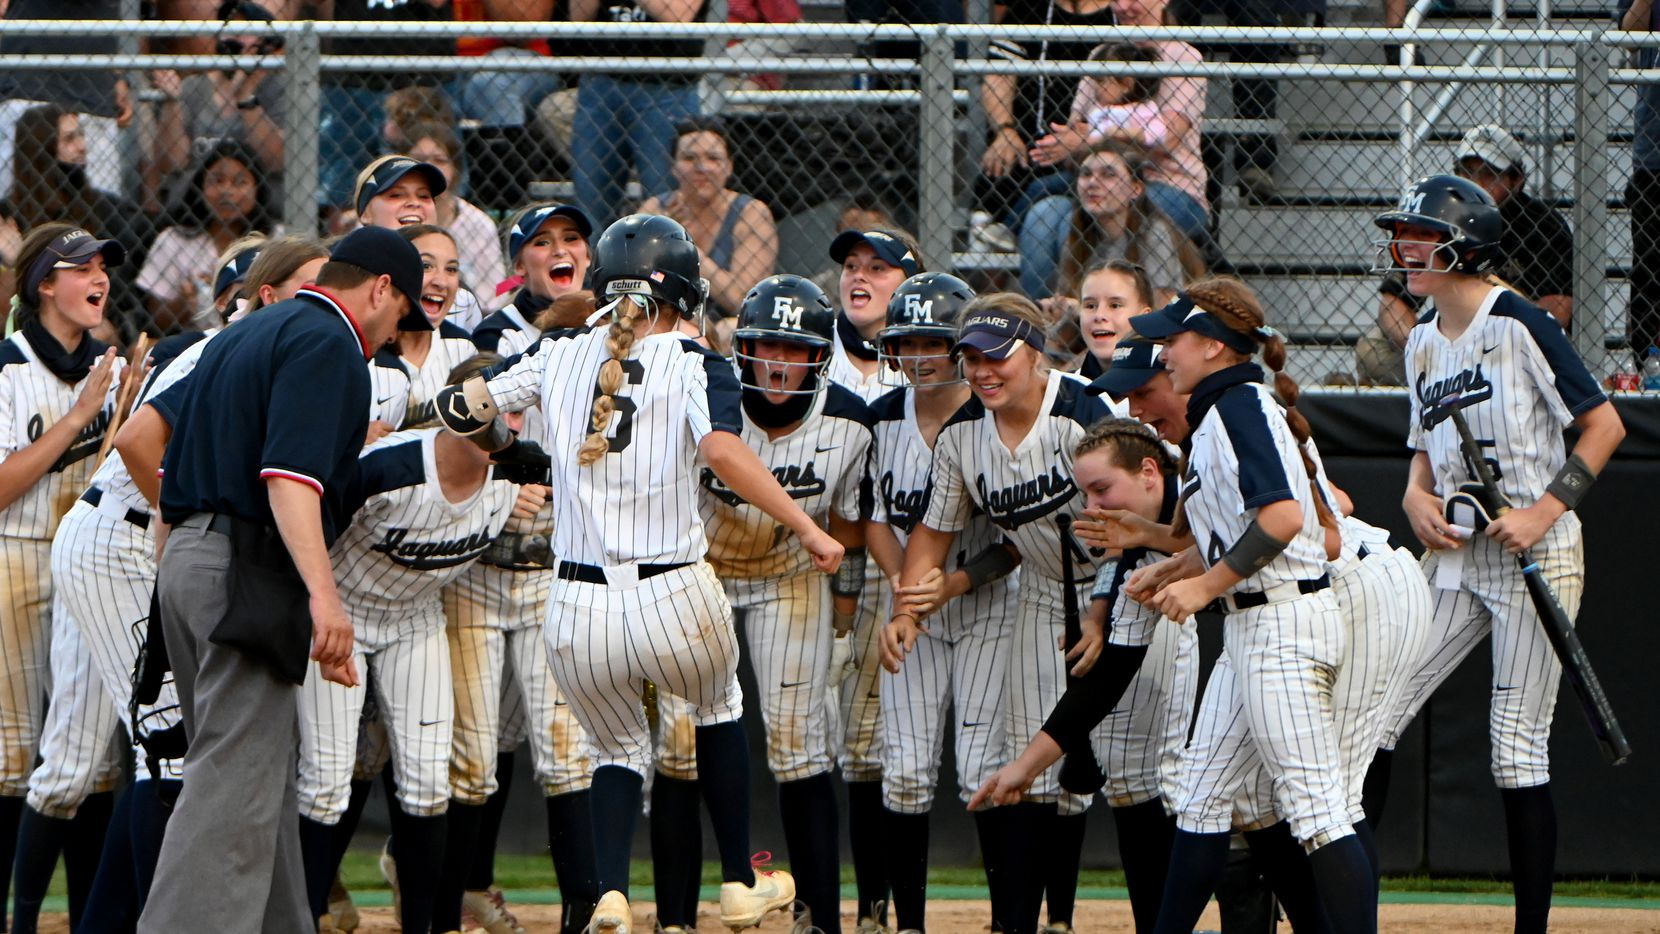 Flower Mound players wait at home plate to celebrate with McKenna Andrews (8) after her two-run home run during game 1 of the Class 6A Region I final softball series between Prosper and Flower Mound, Wednesday, May 26, 2021, in Flower Mound, Texas.